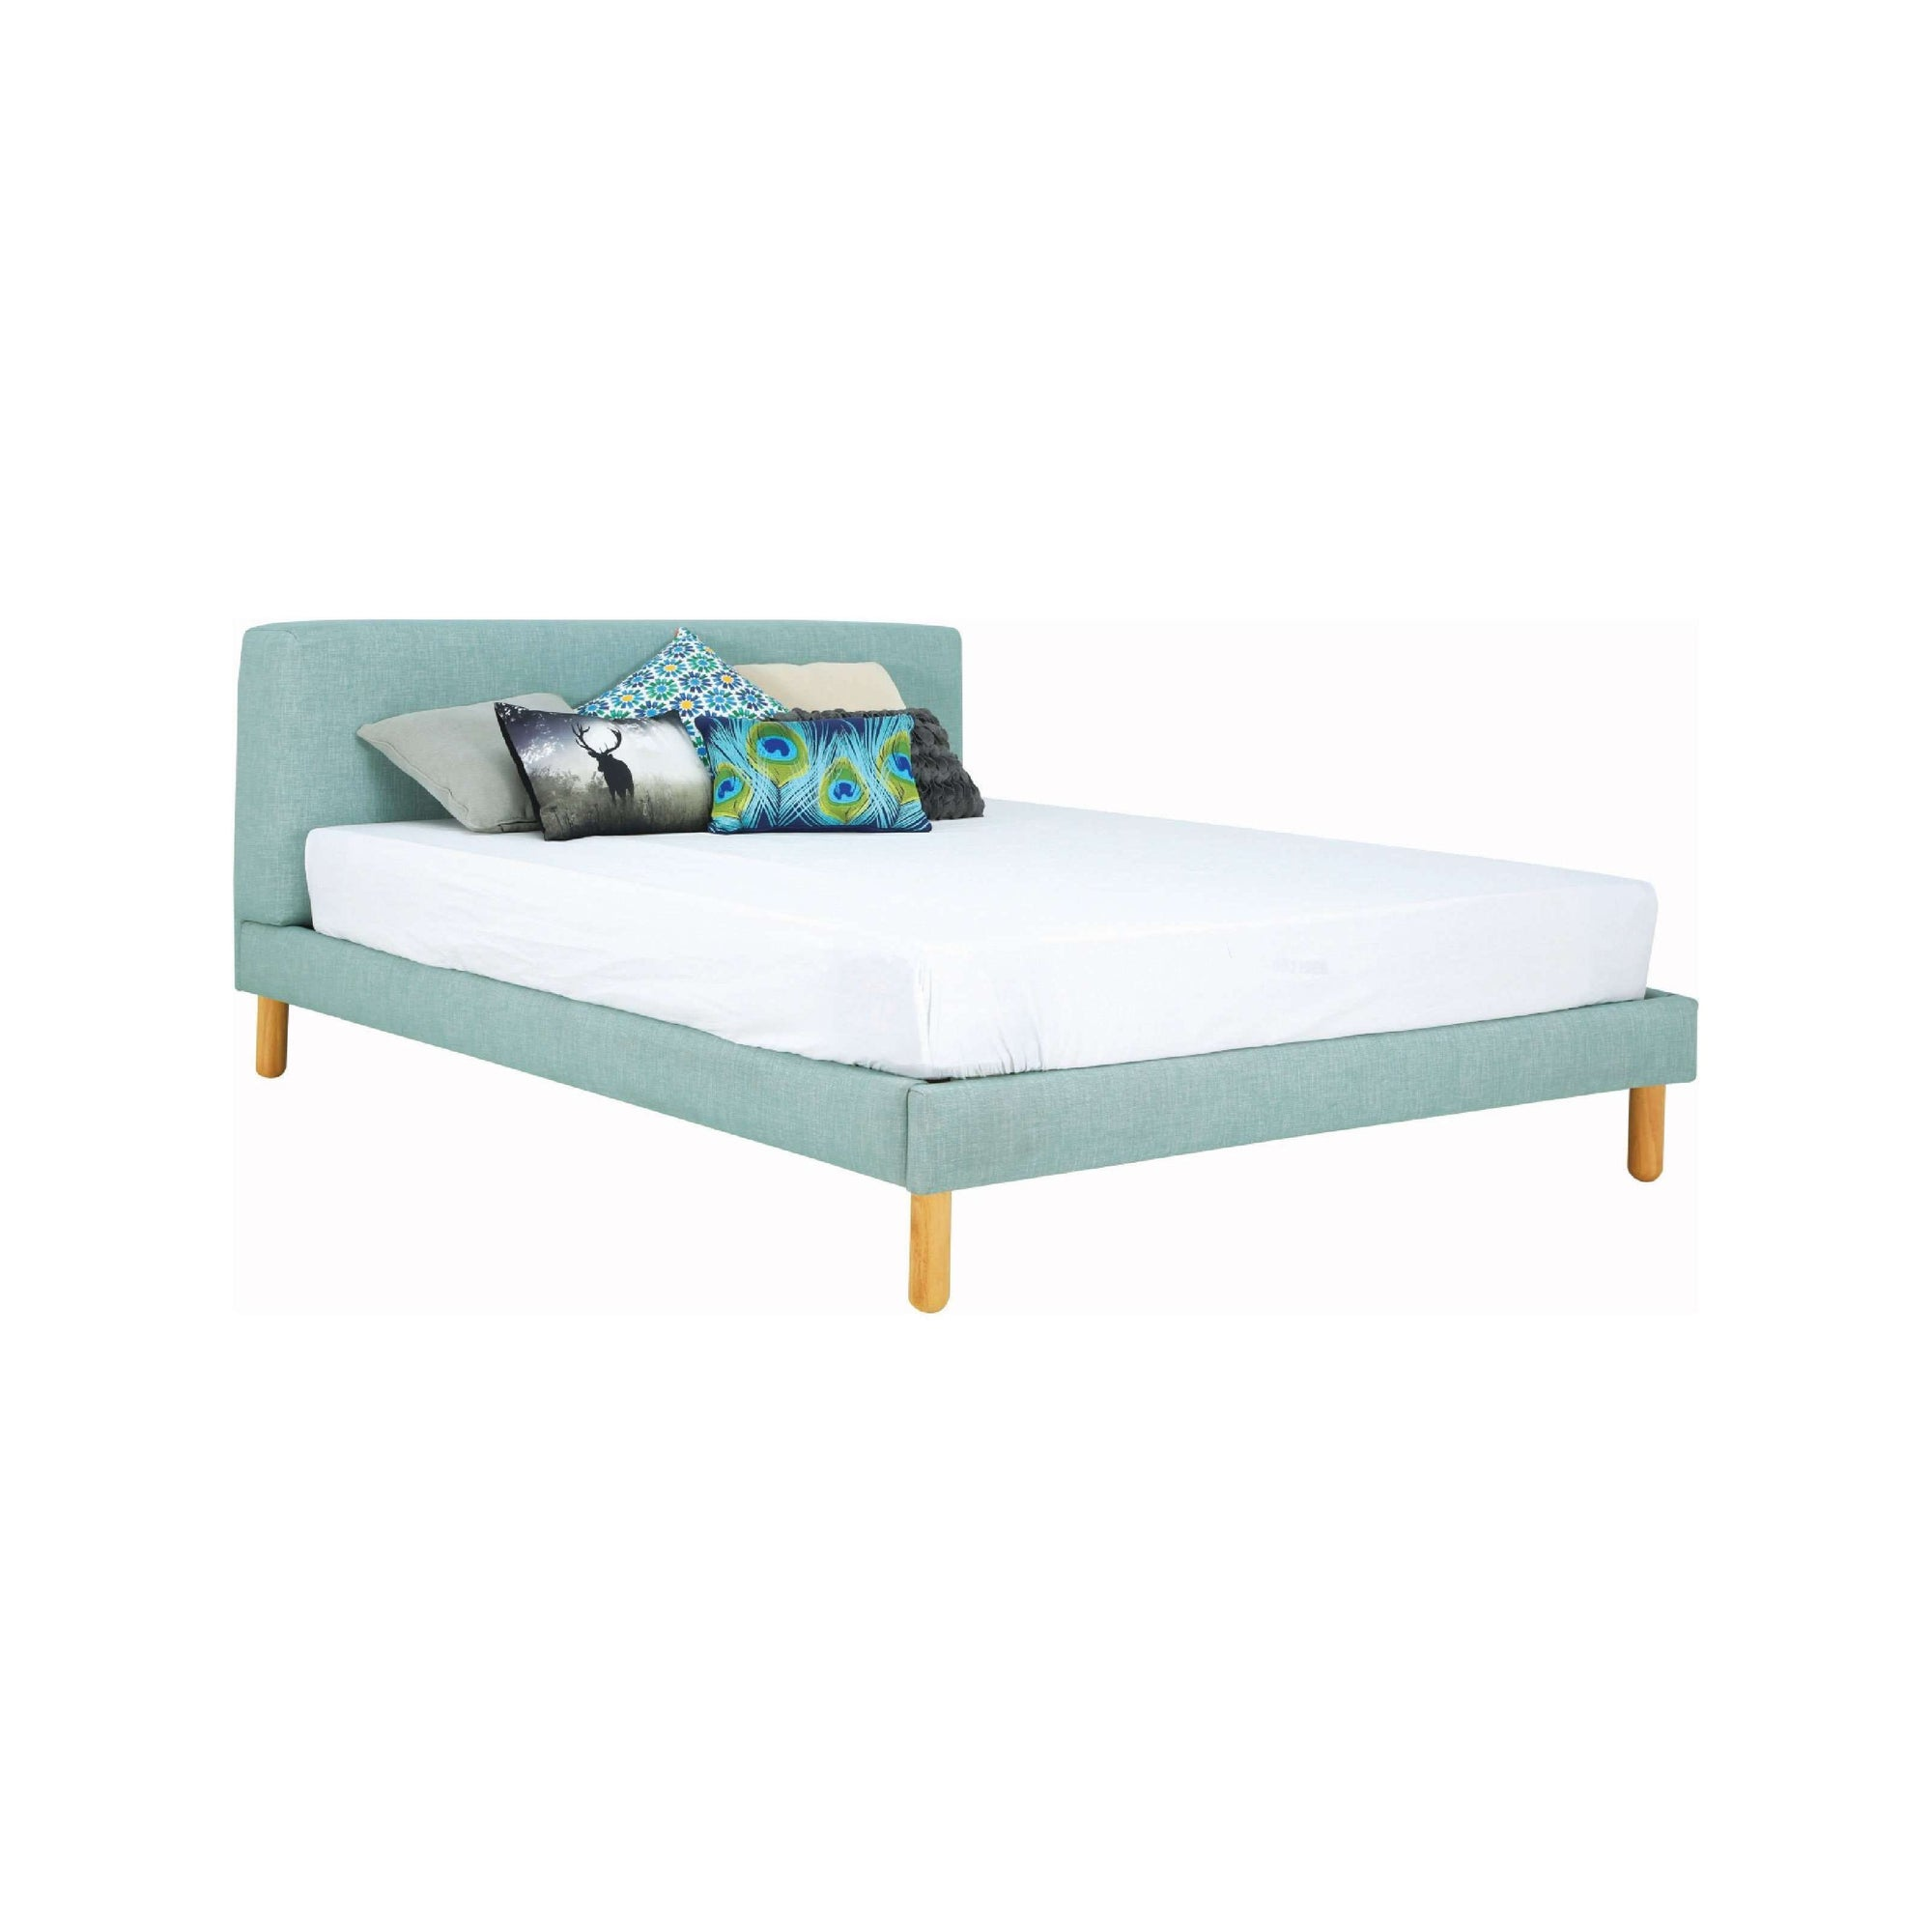 ZEUS Bed with Natural Leg, Sea Green Colour Cambric Fabric